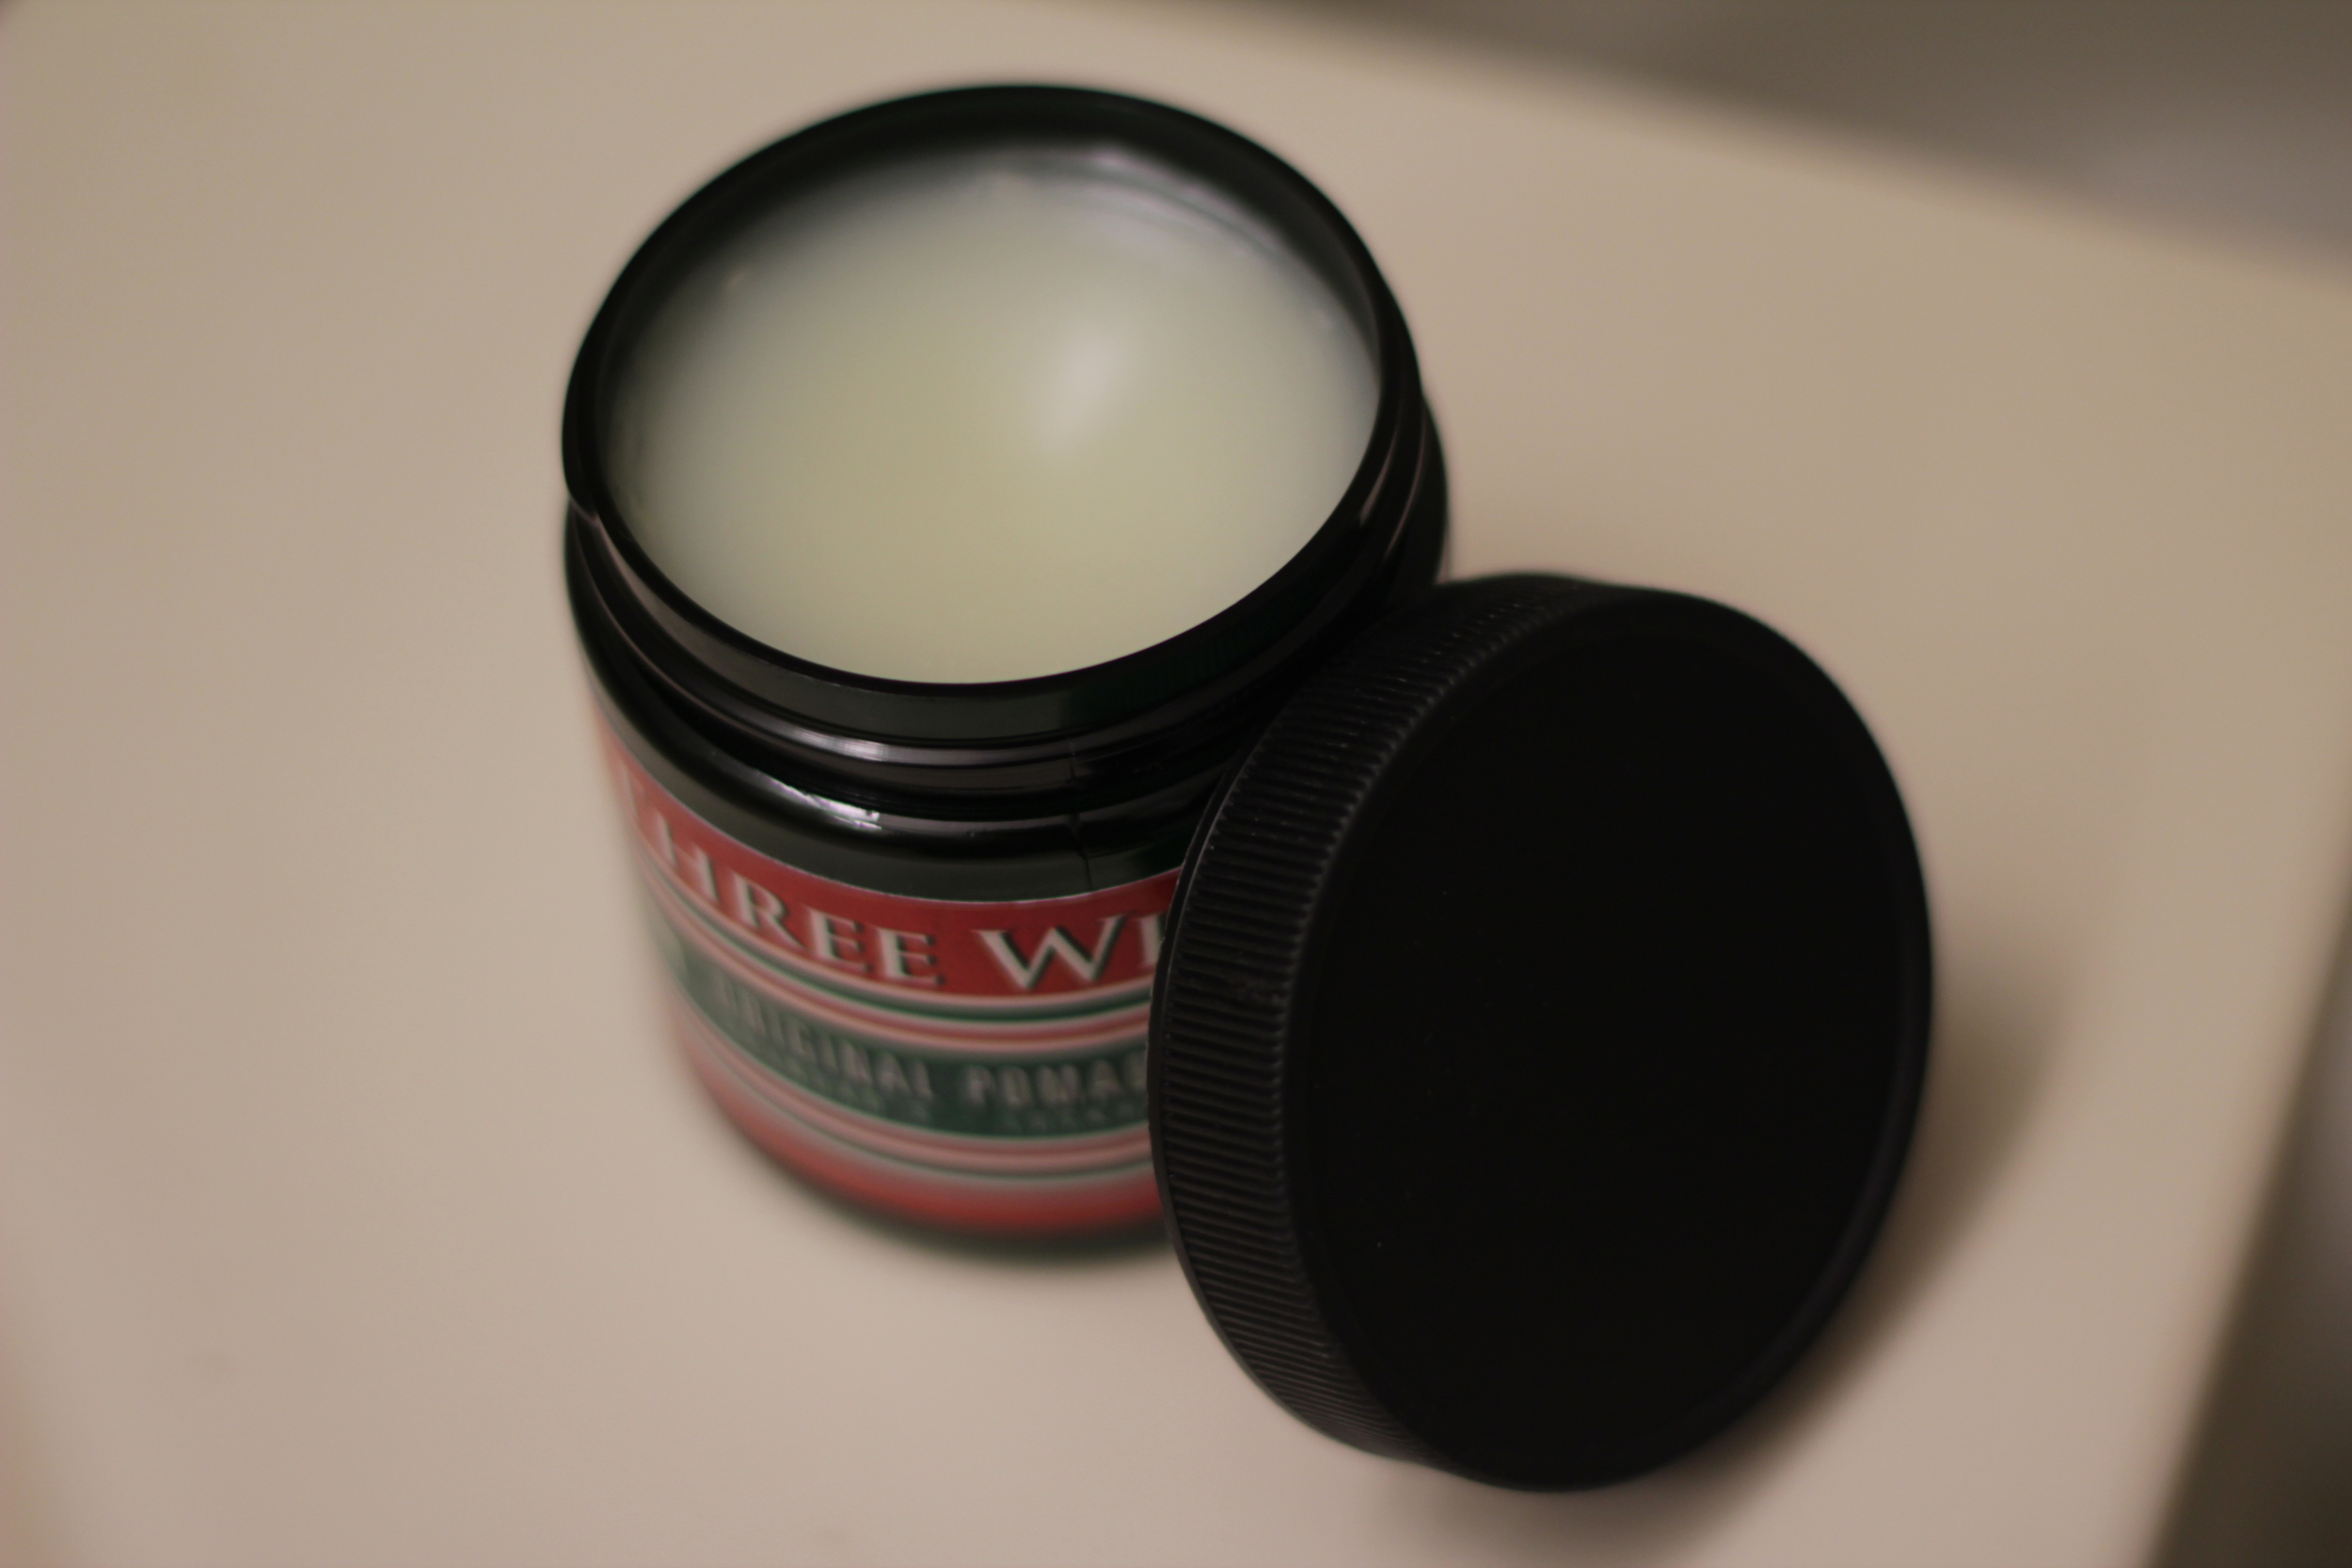 Three Wise Men Ironfist Lightweight Pomade texture